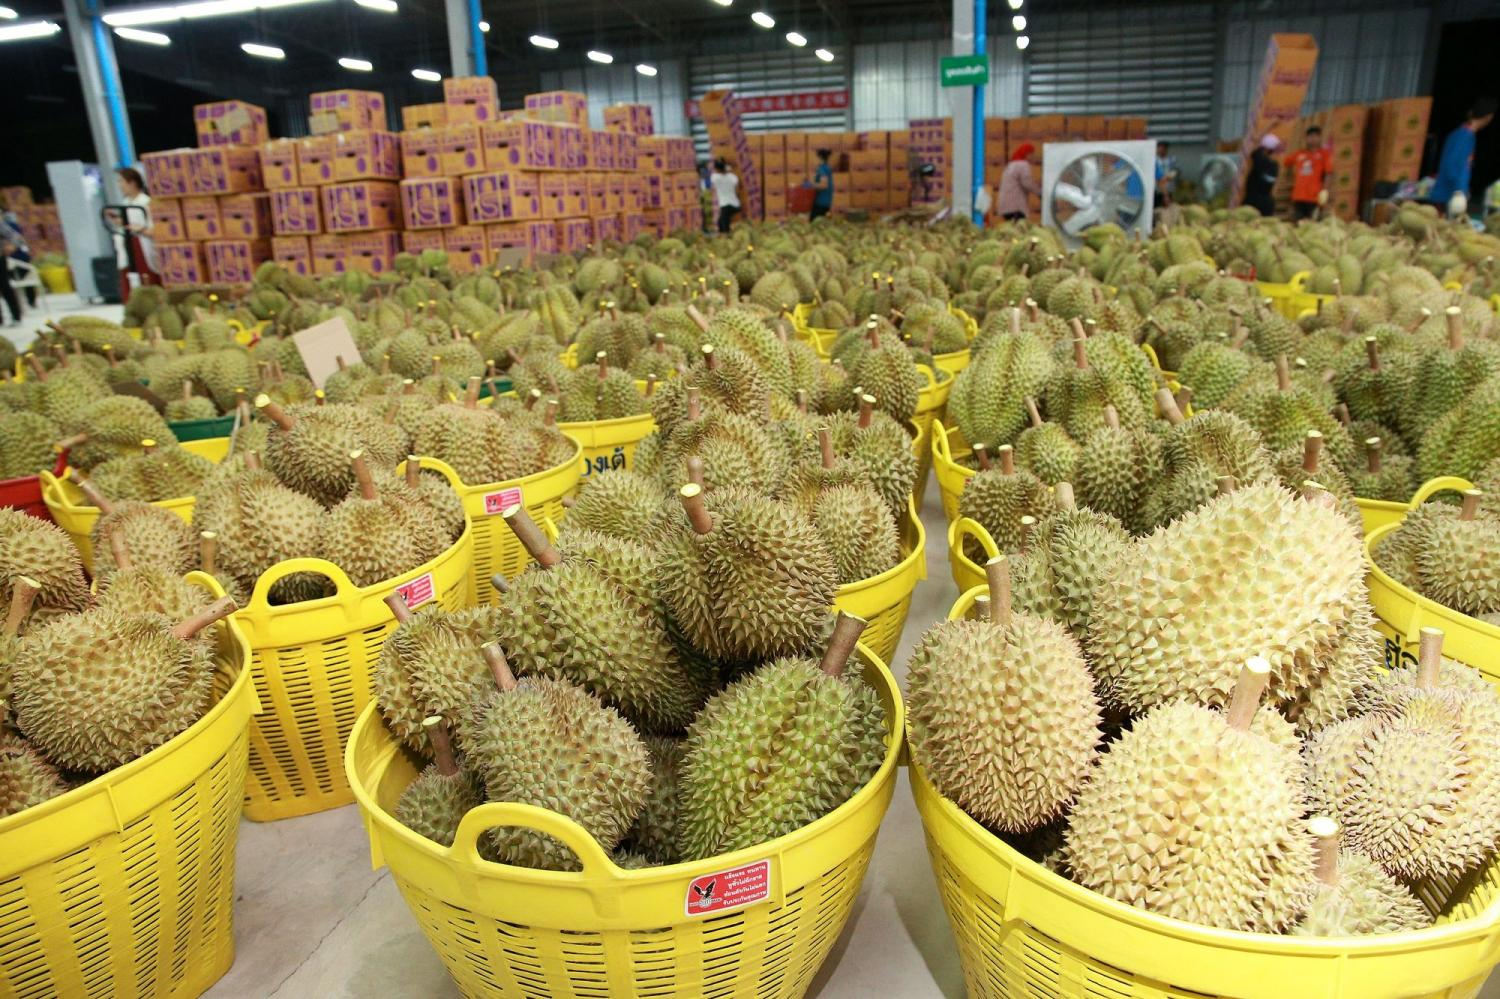 Fresh durian and seasonal fruit from Thailand are on offer during China's biggest online shopping event, Tmall 6.18 Mid-Year Shopping Festival.